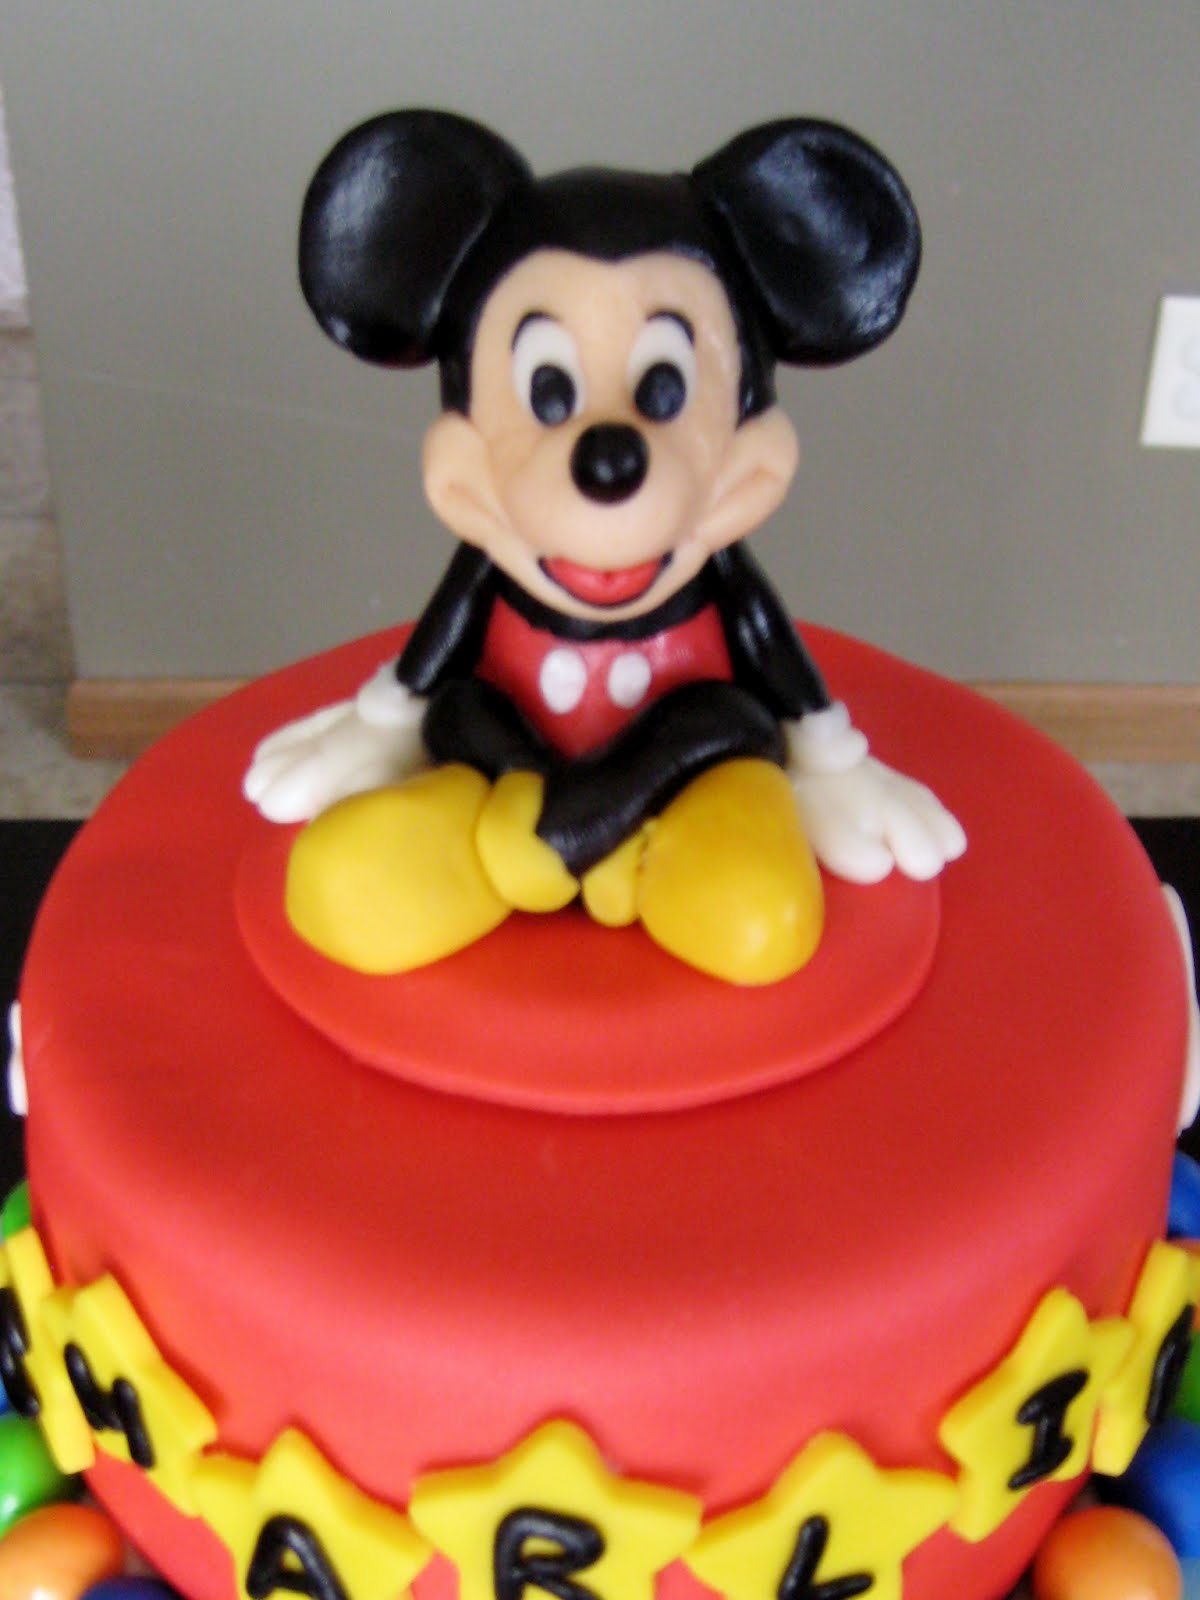 Custom Cakes by Julie: March 2012